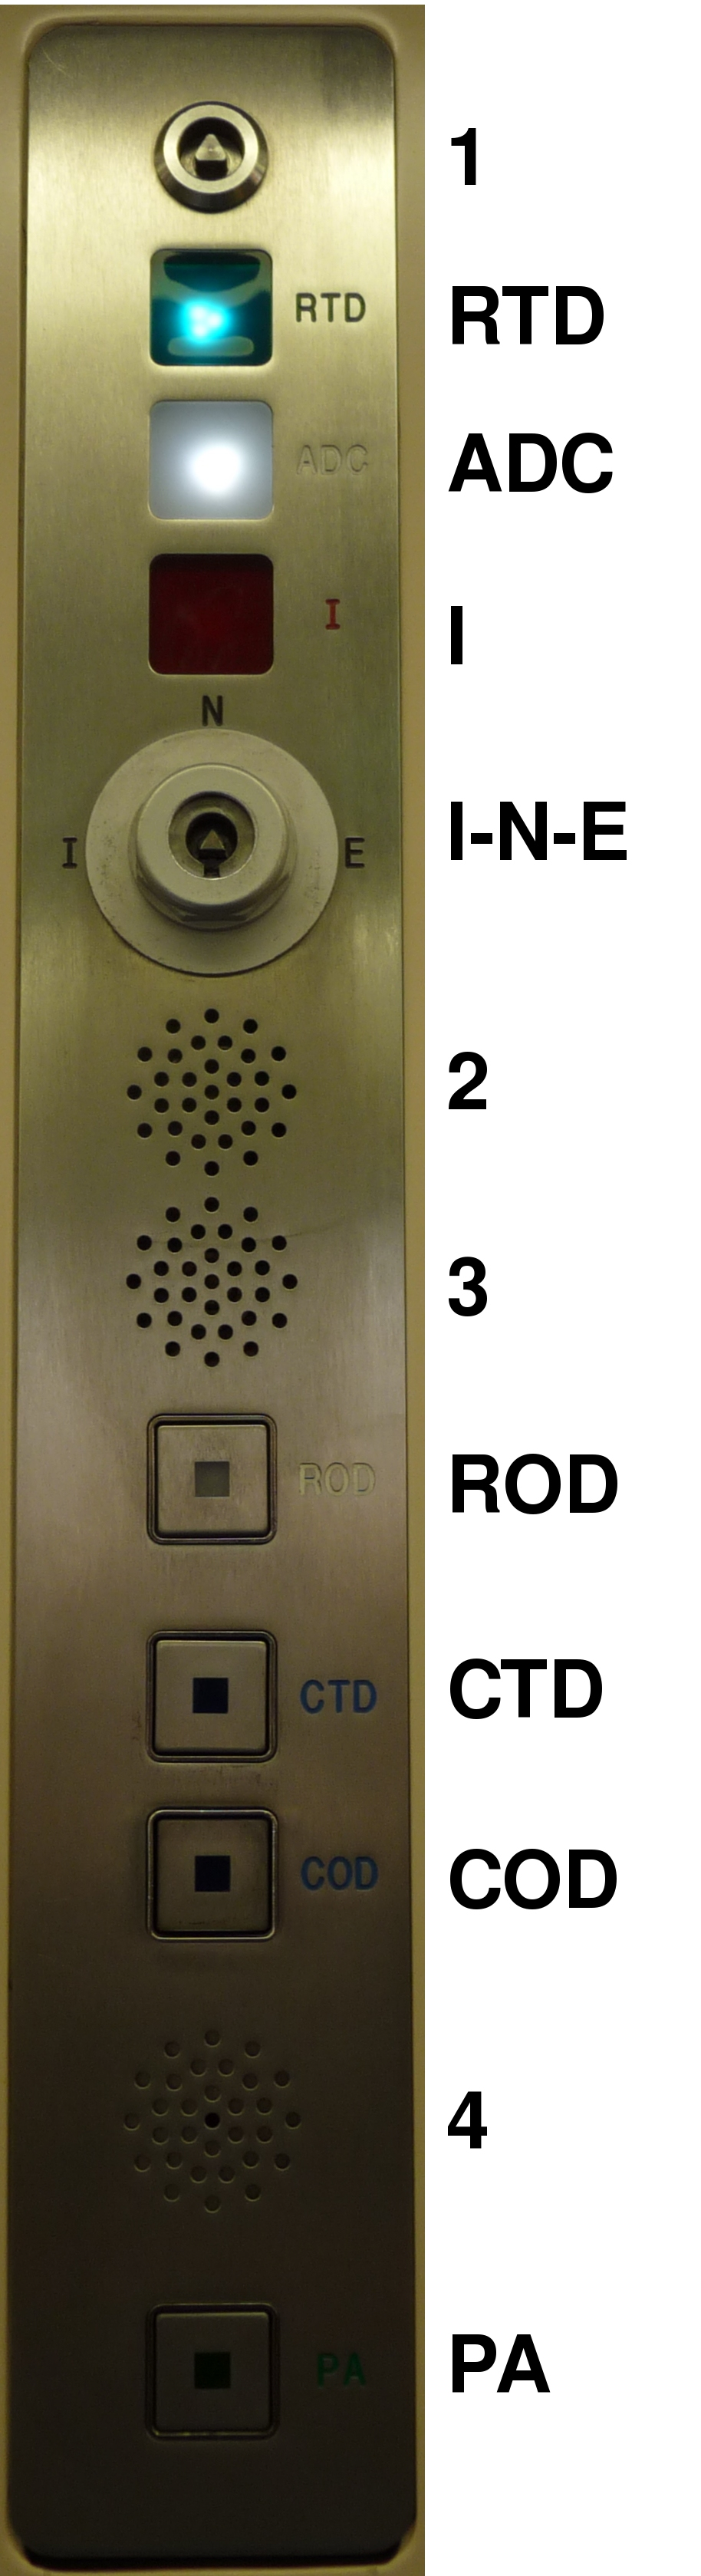 FileDLR door controls 04.jpg  sc 1 st  Wikimedia Commons & File:DLR door controls 04.jpg - Wikimedia Commons